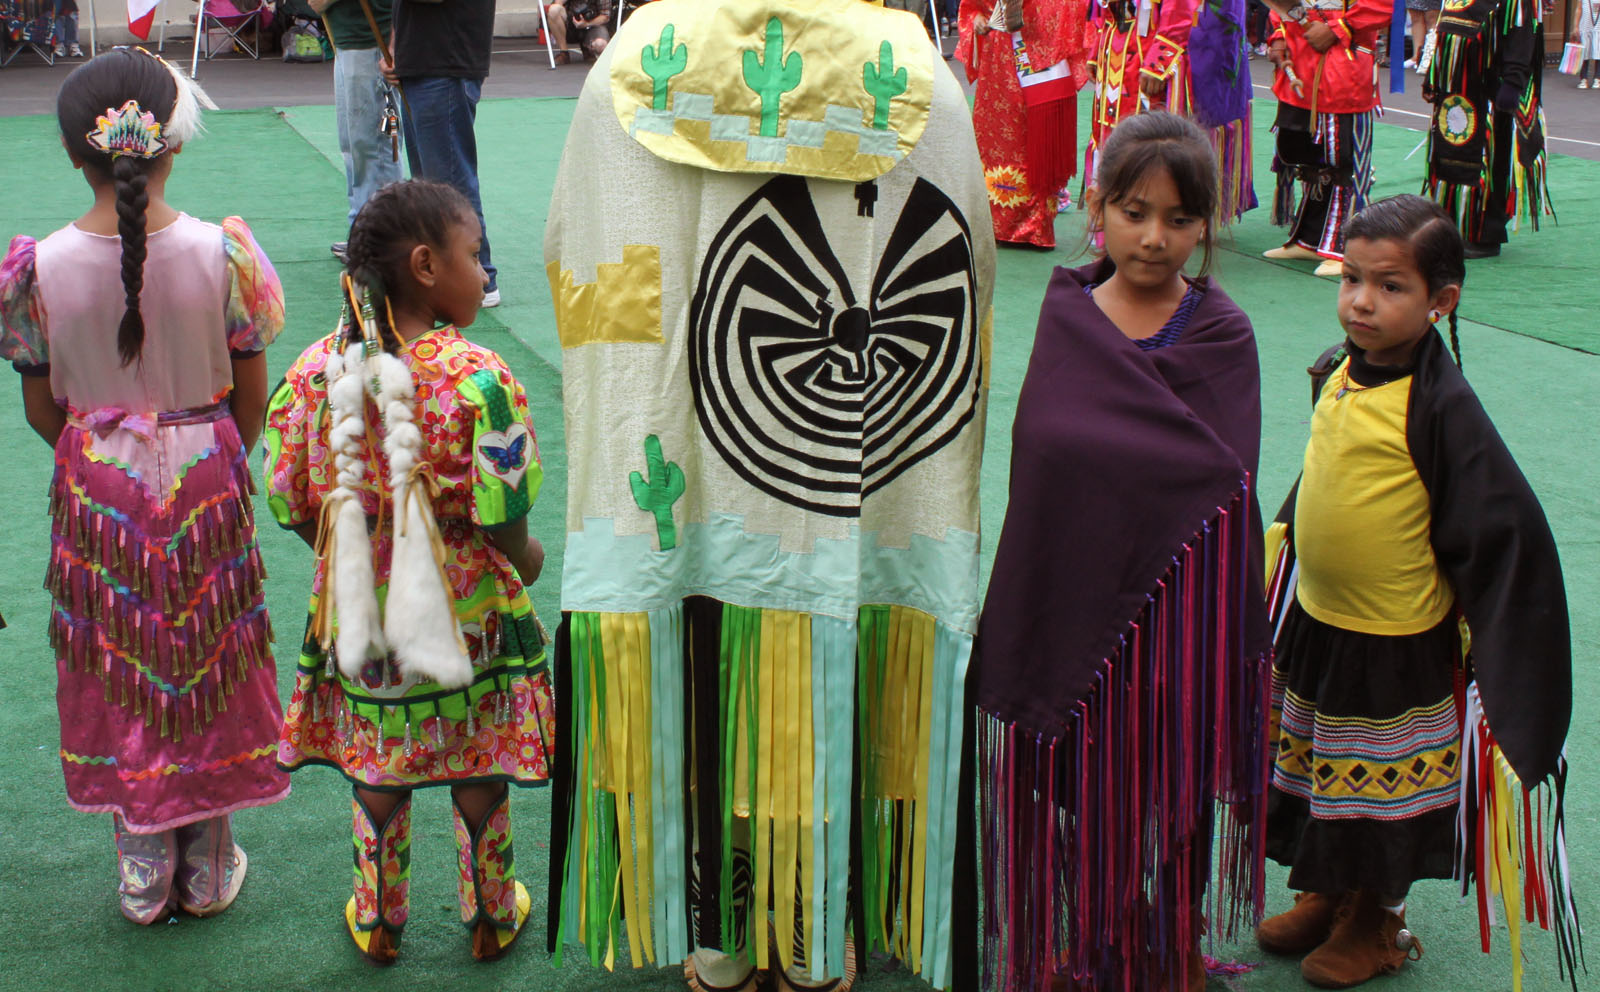 American Indian youth get ready for the Dancing Feathers powwow earlier this month. Many urban Native youth struggle for recognition in their own city.